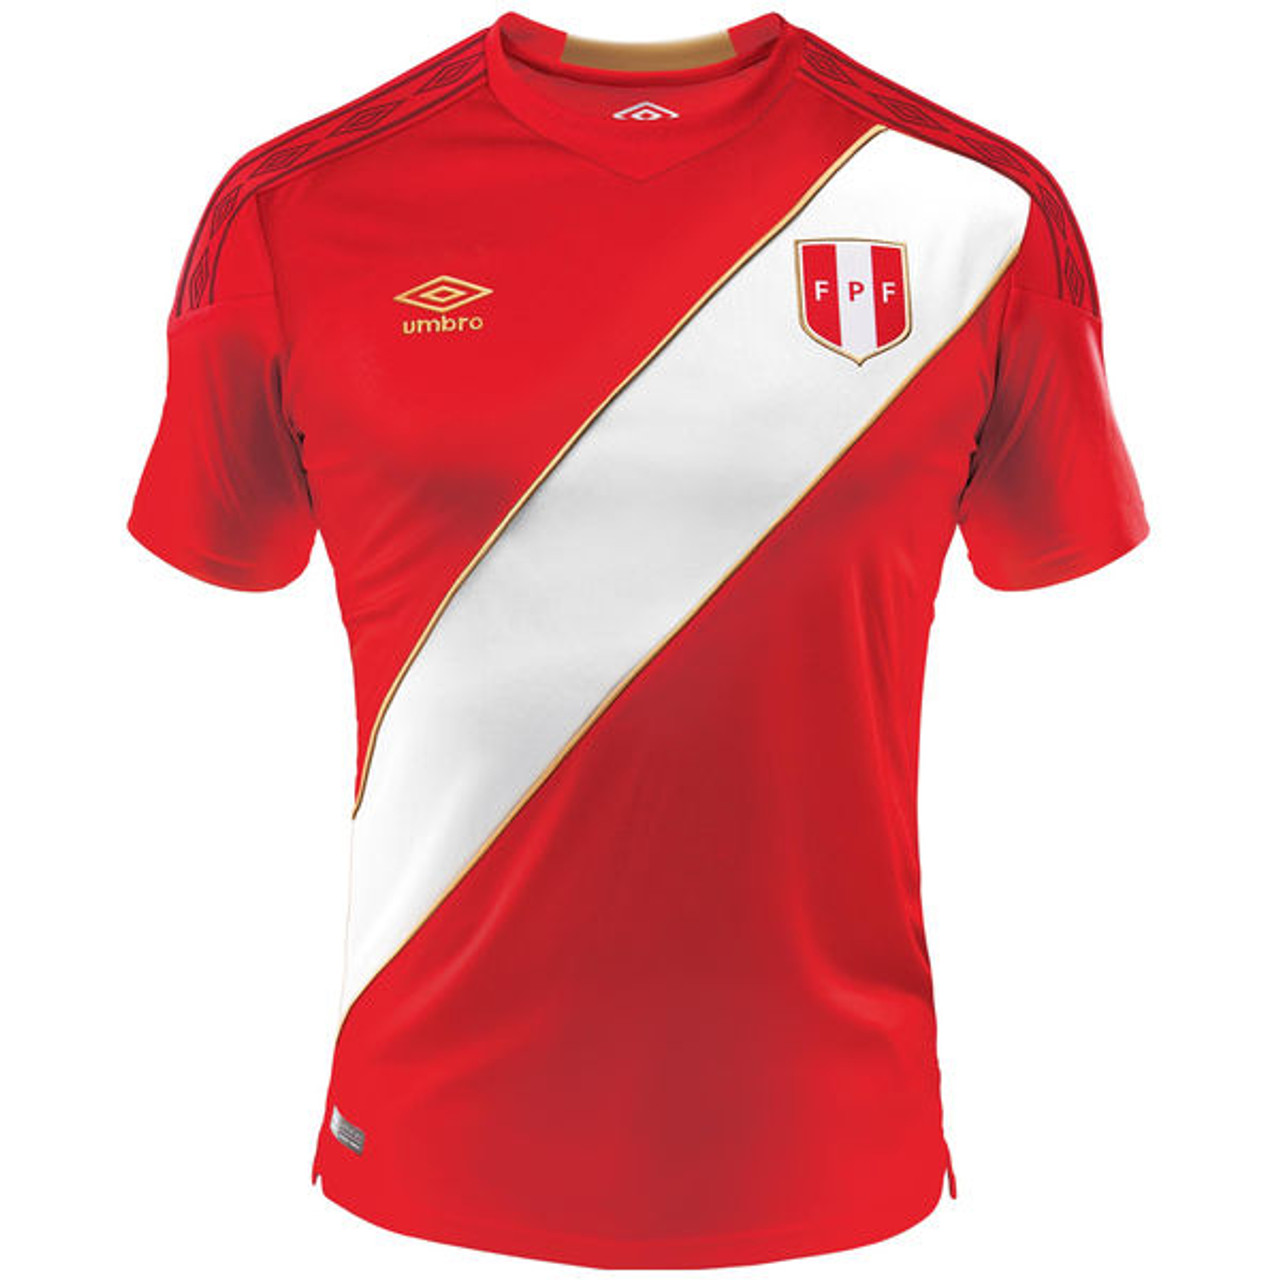 dbccedc5890 UMBRO PERU 2018 AWAY JERSEY RED - Soccer Plus